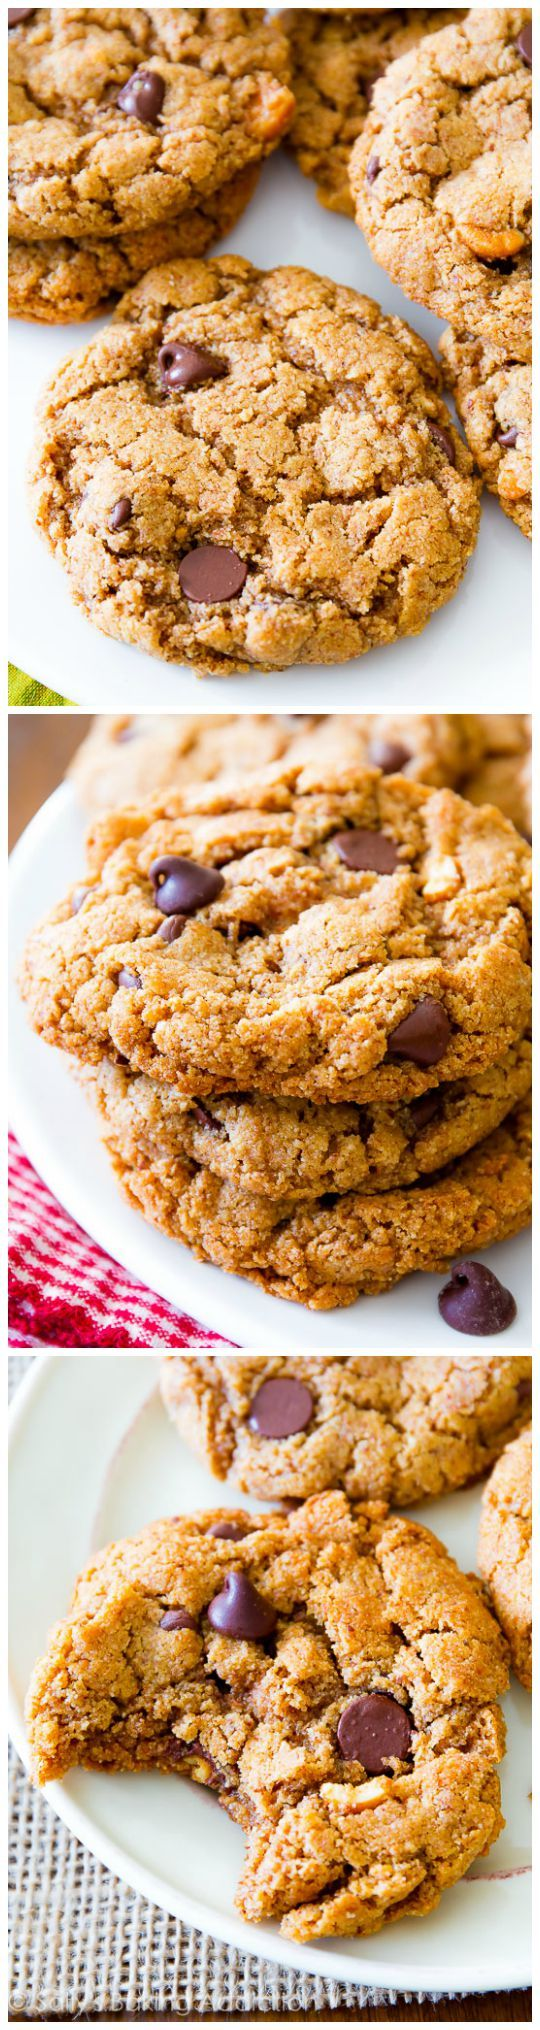 These Flourless Almond Butter Chocolate Chip Cookies are so delicious, you won't miss the butter and flour!